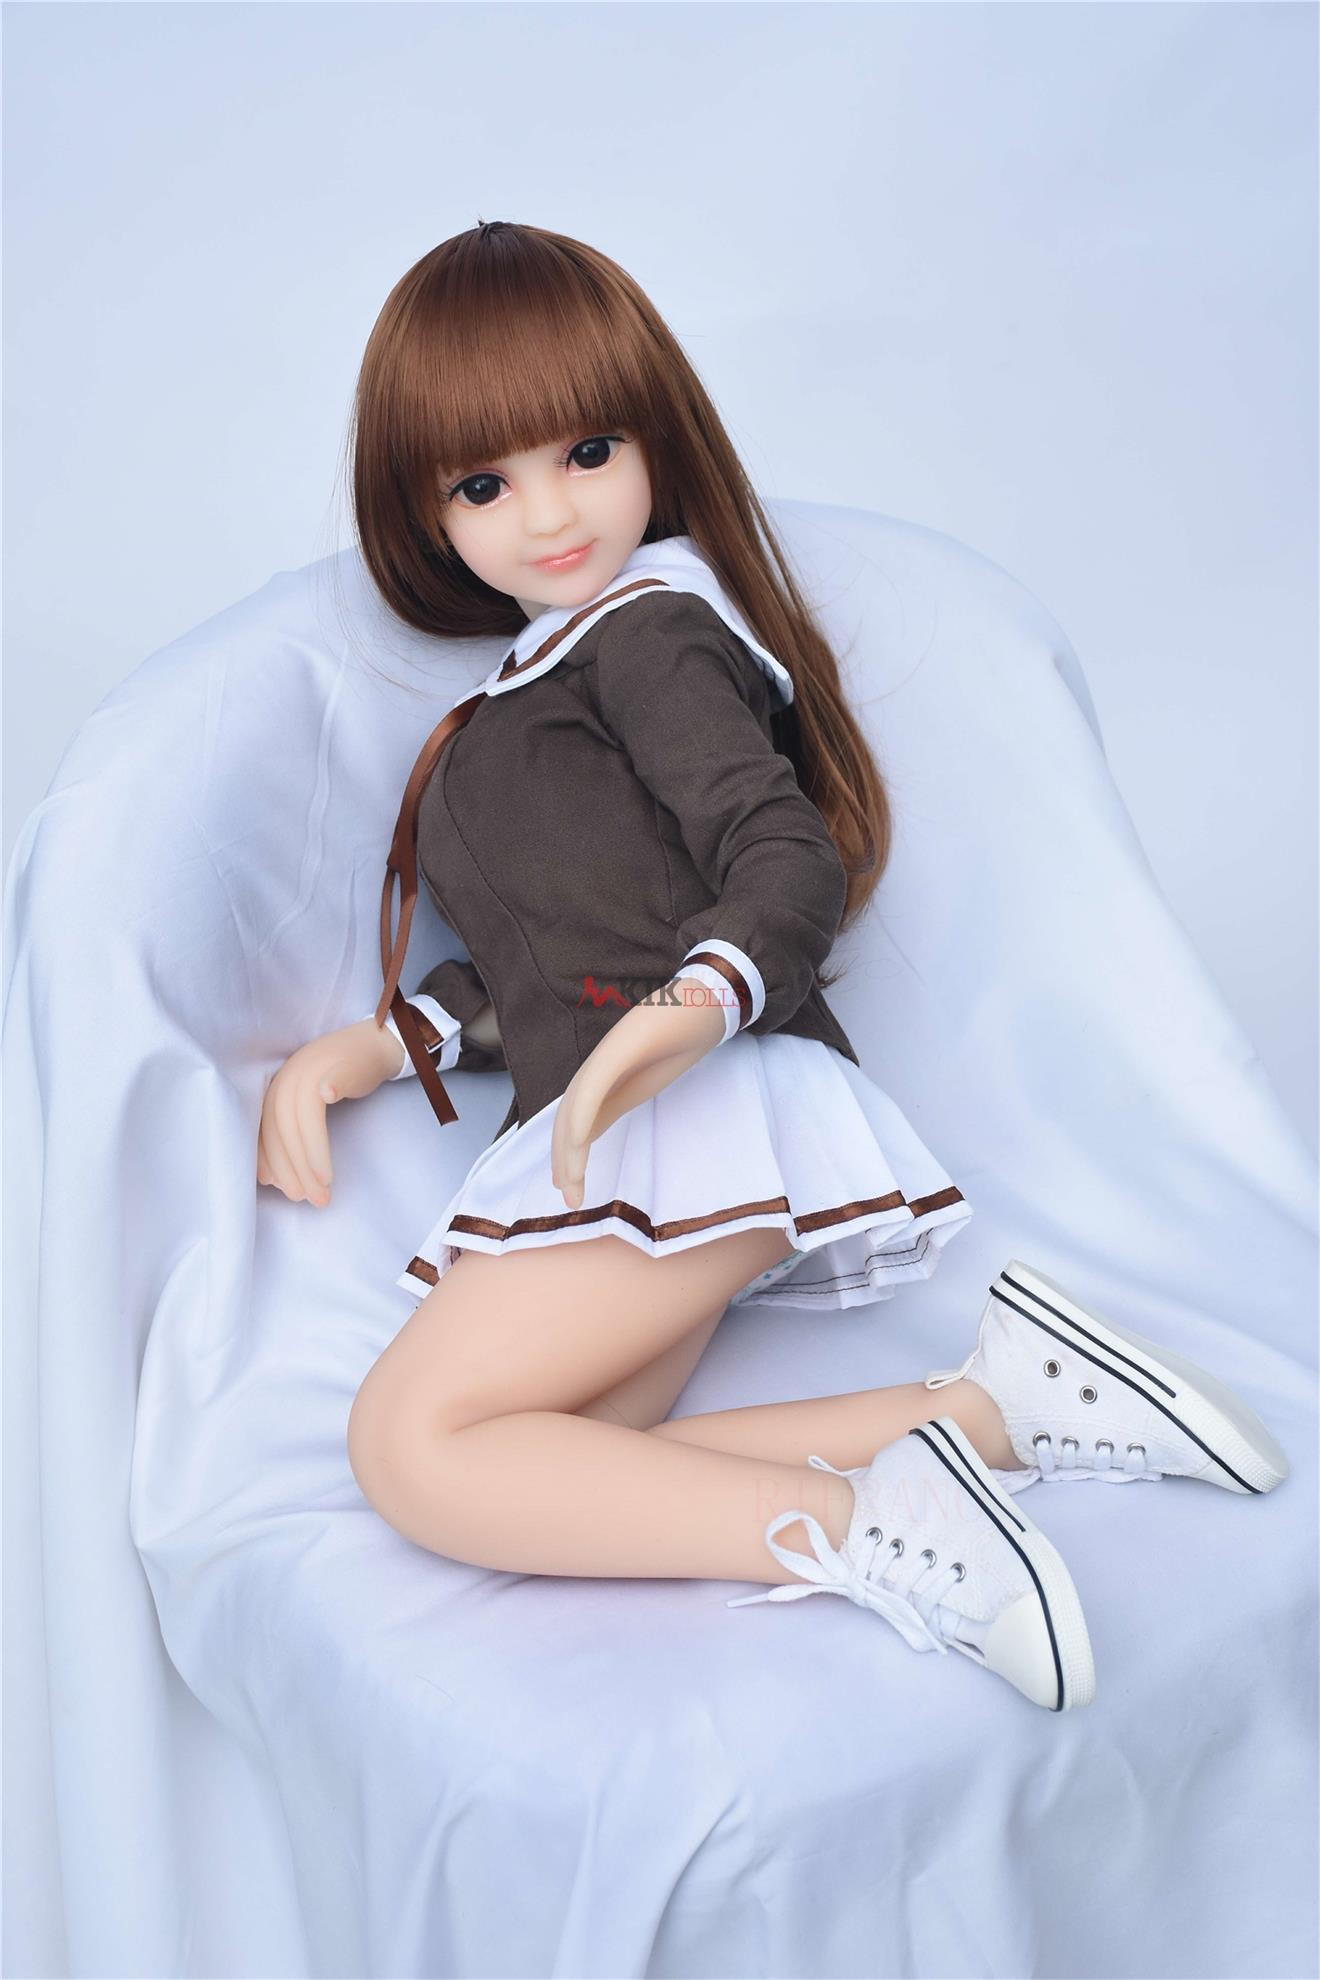 65cm petite tiny sex doll (5)